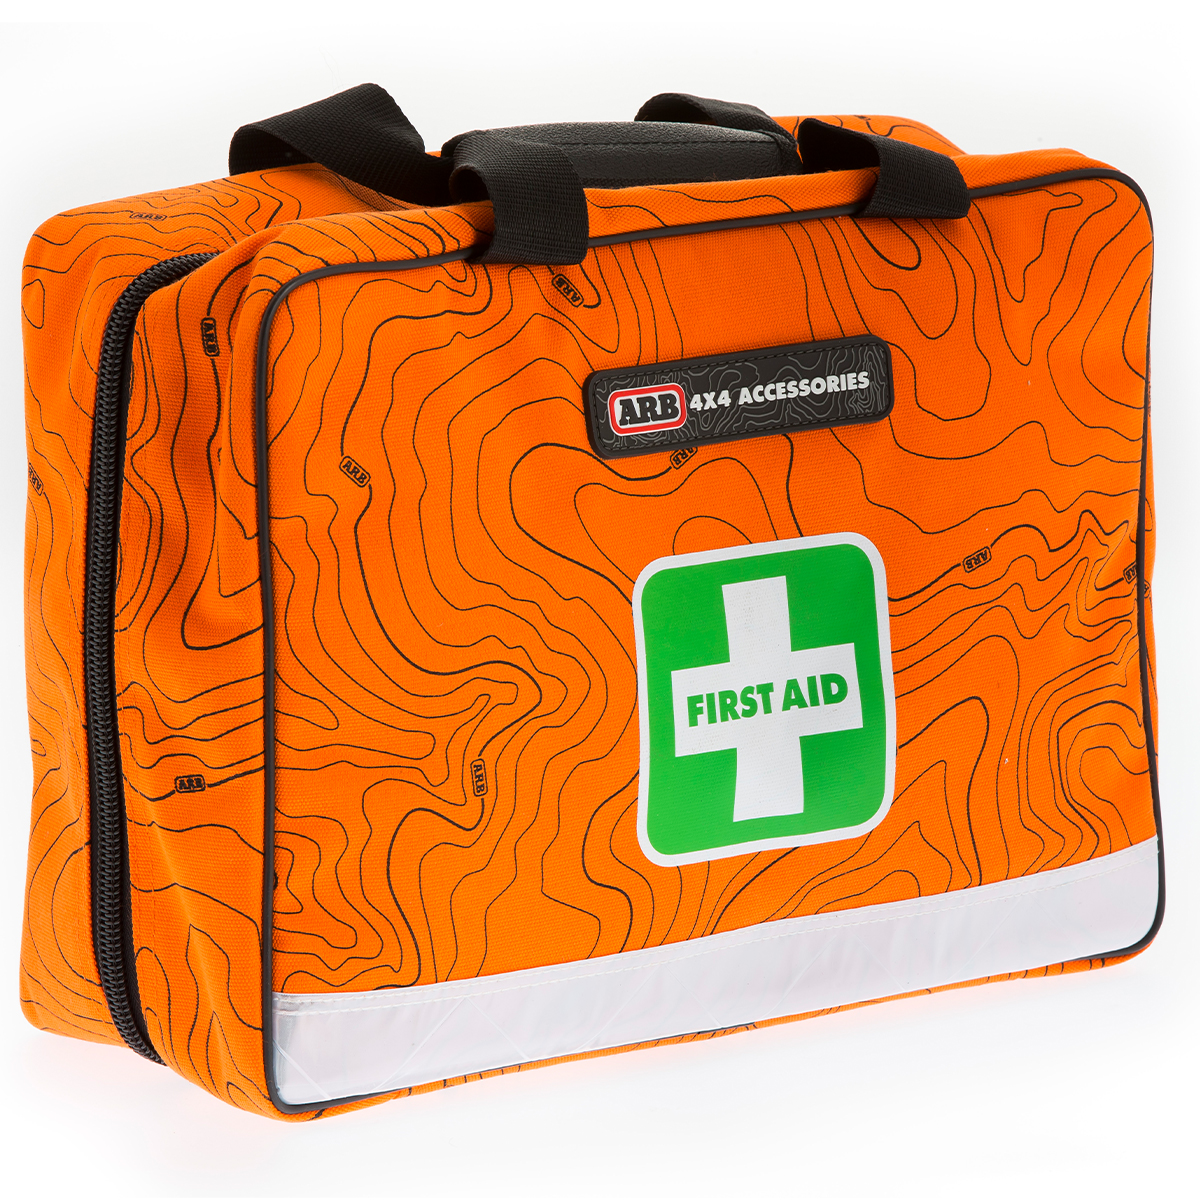 Arb First Aid Kit Life Style Store